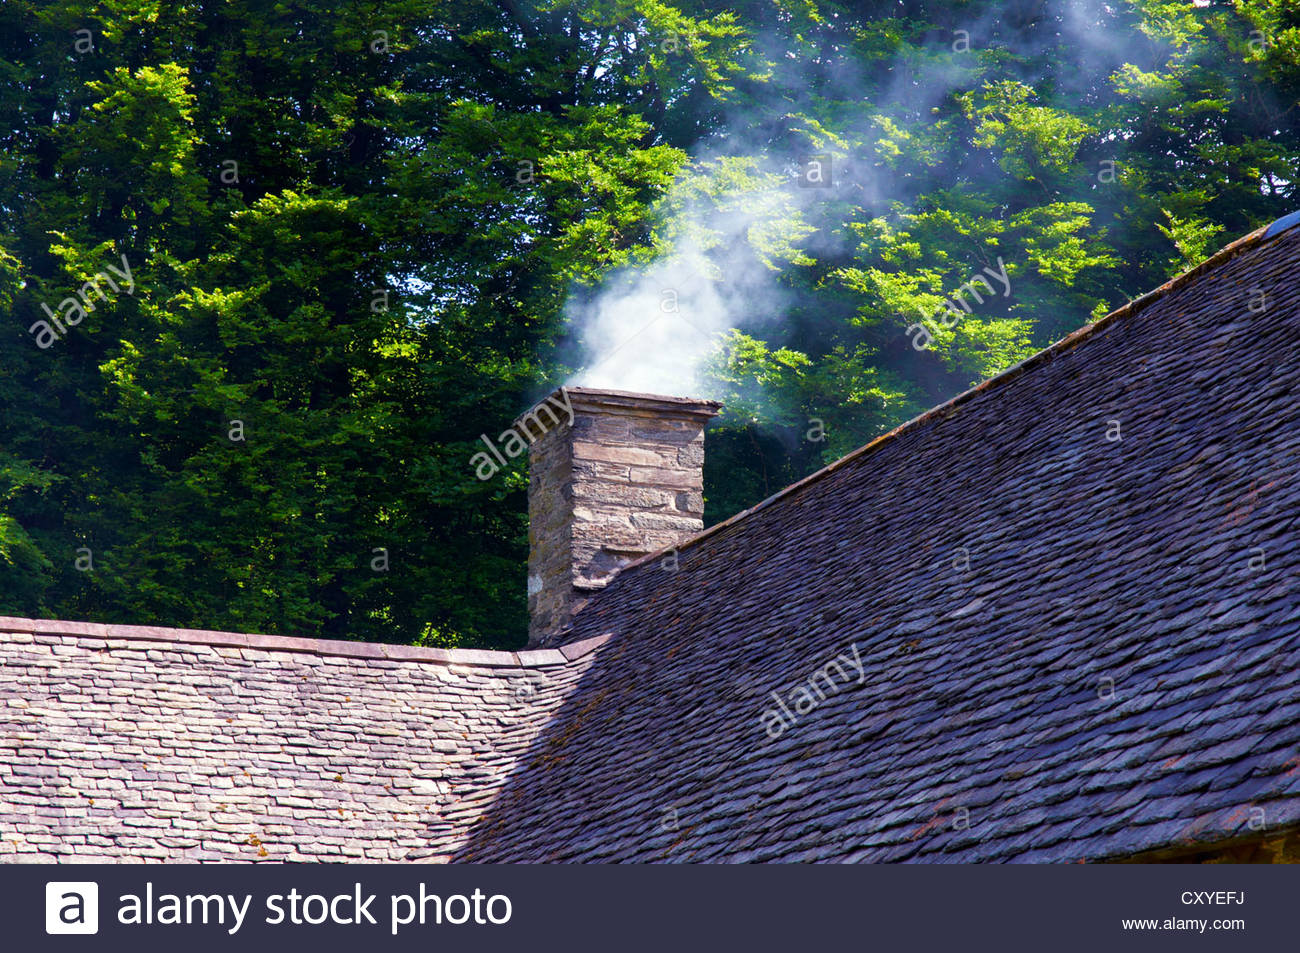 smoke being emitted from a chimney stack on a tiled roof Stock Photo